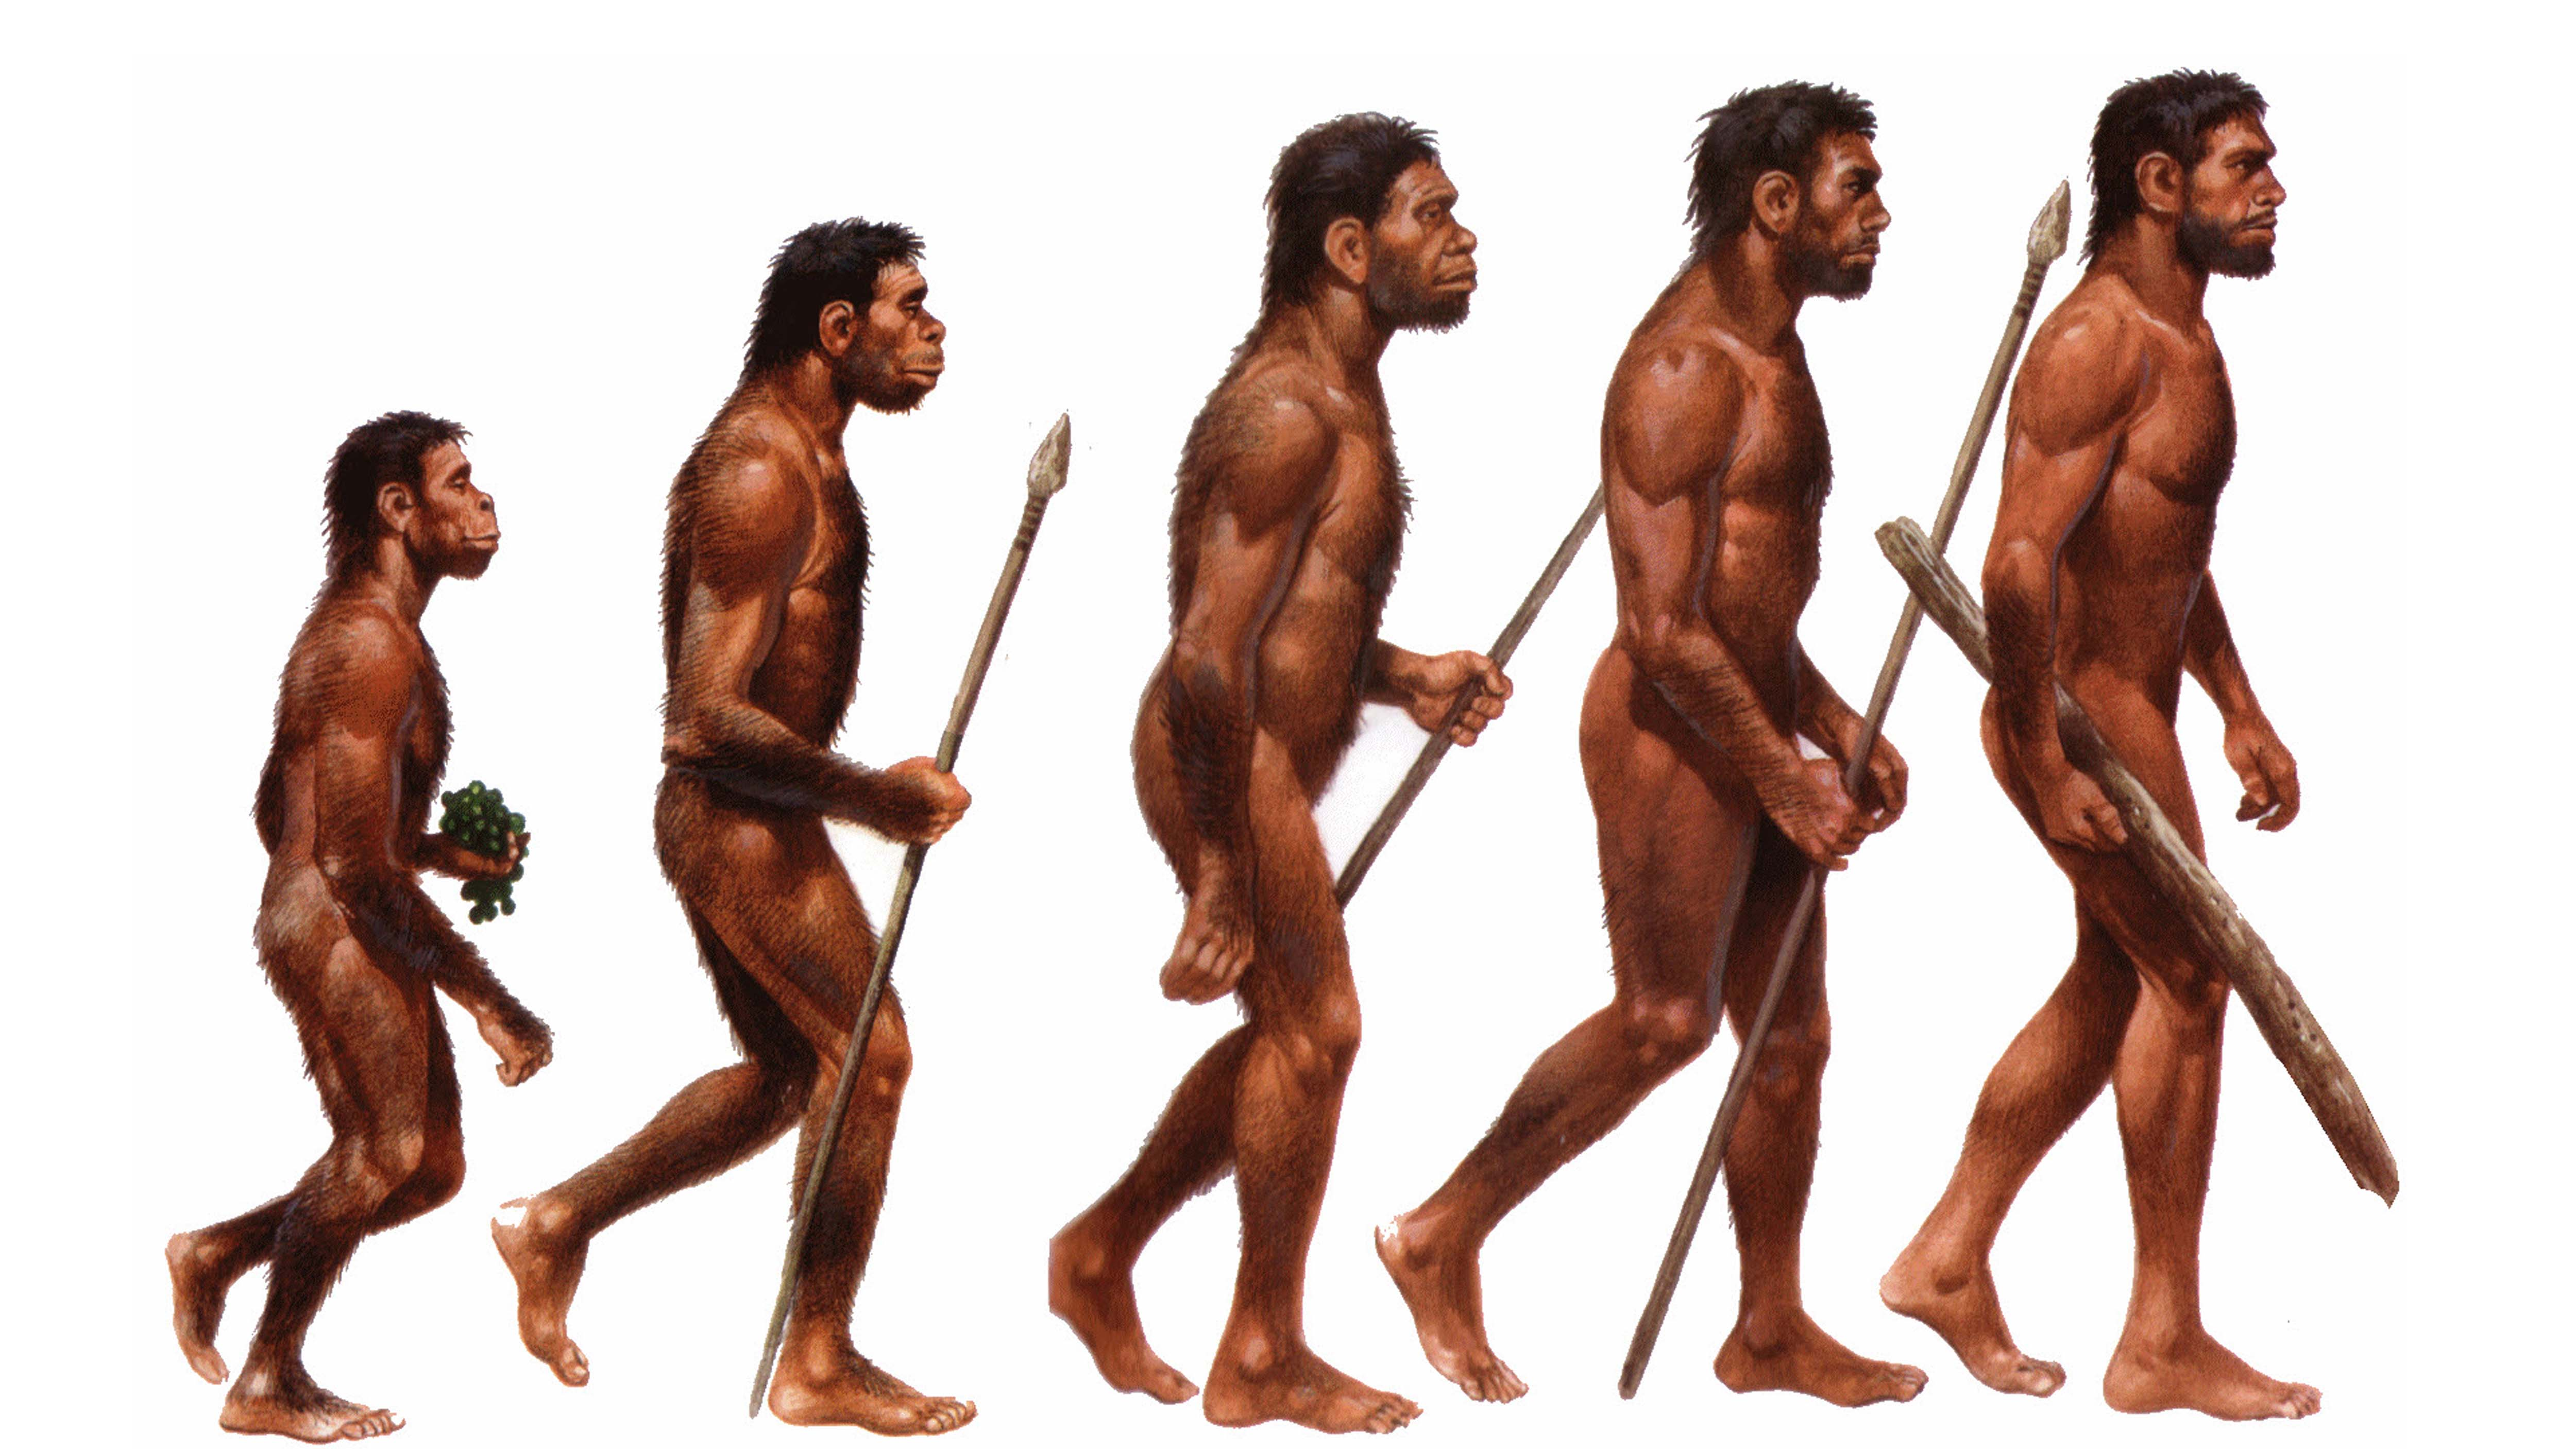 natural selection and the evolution of the homo sapiens